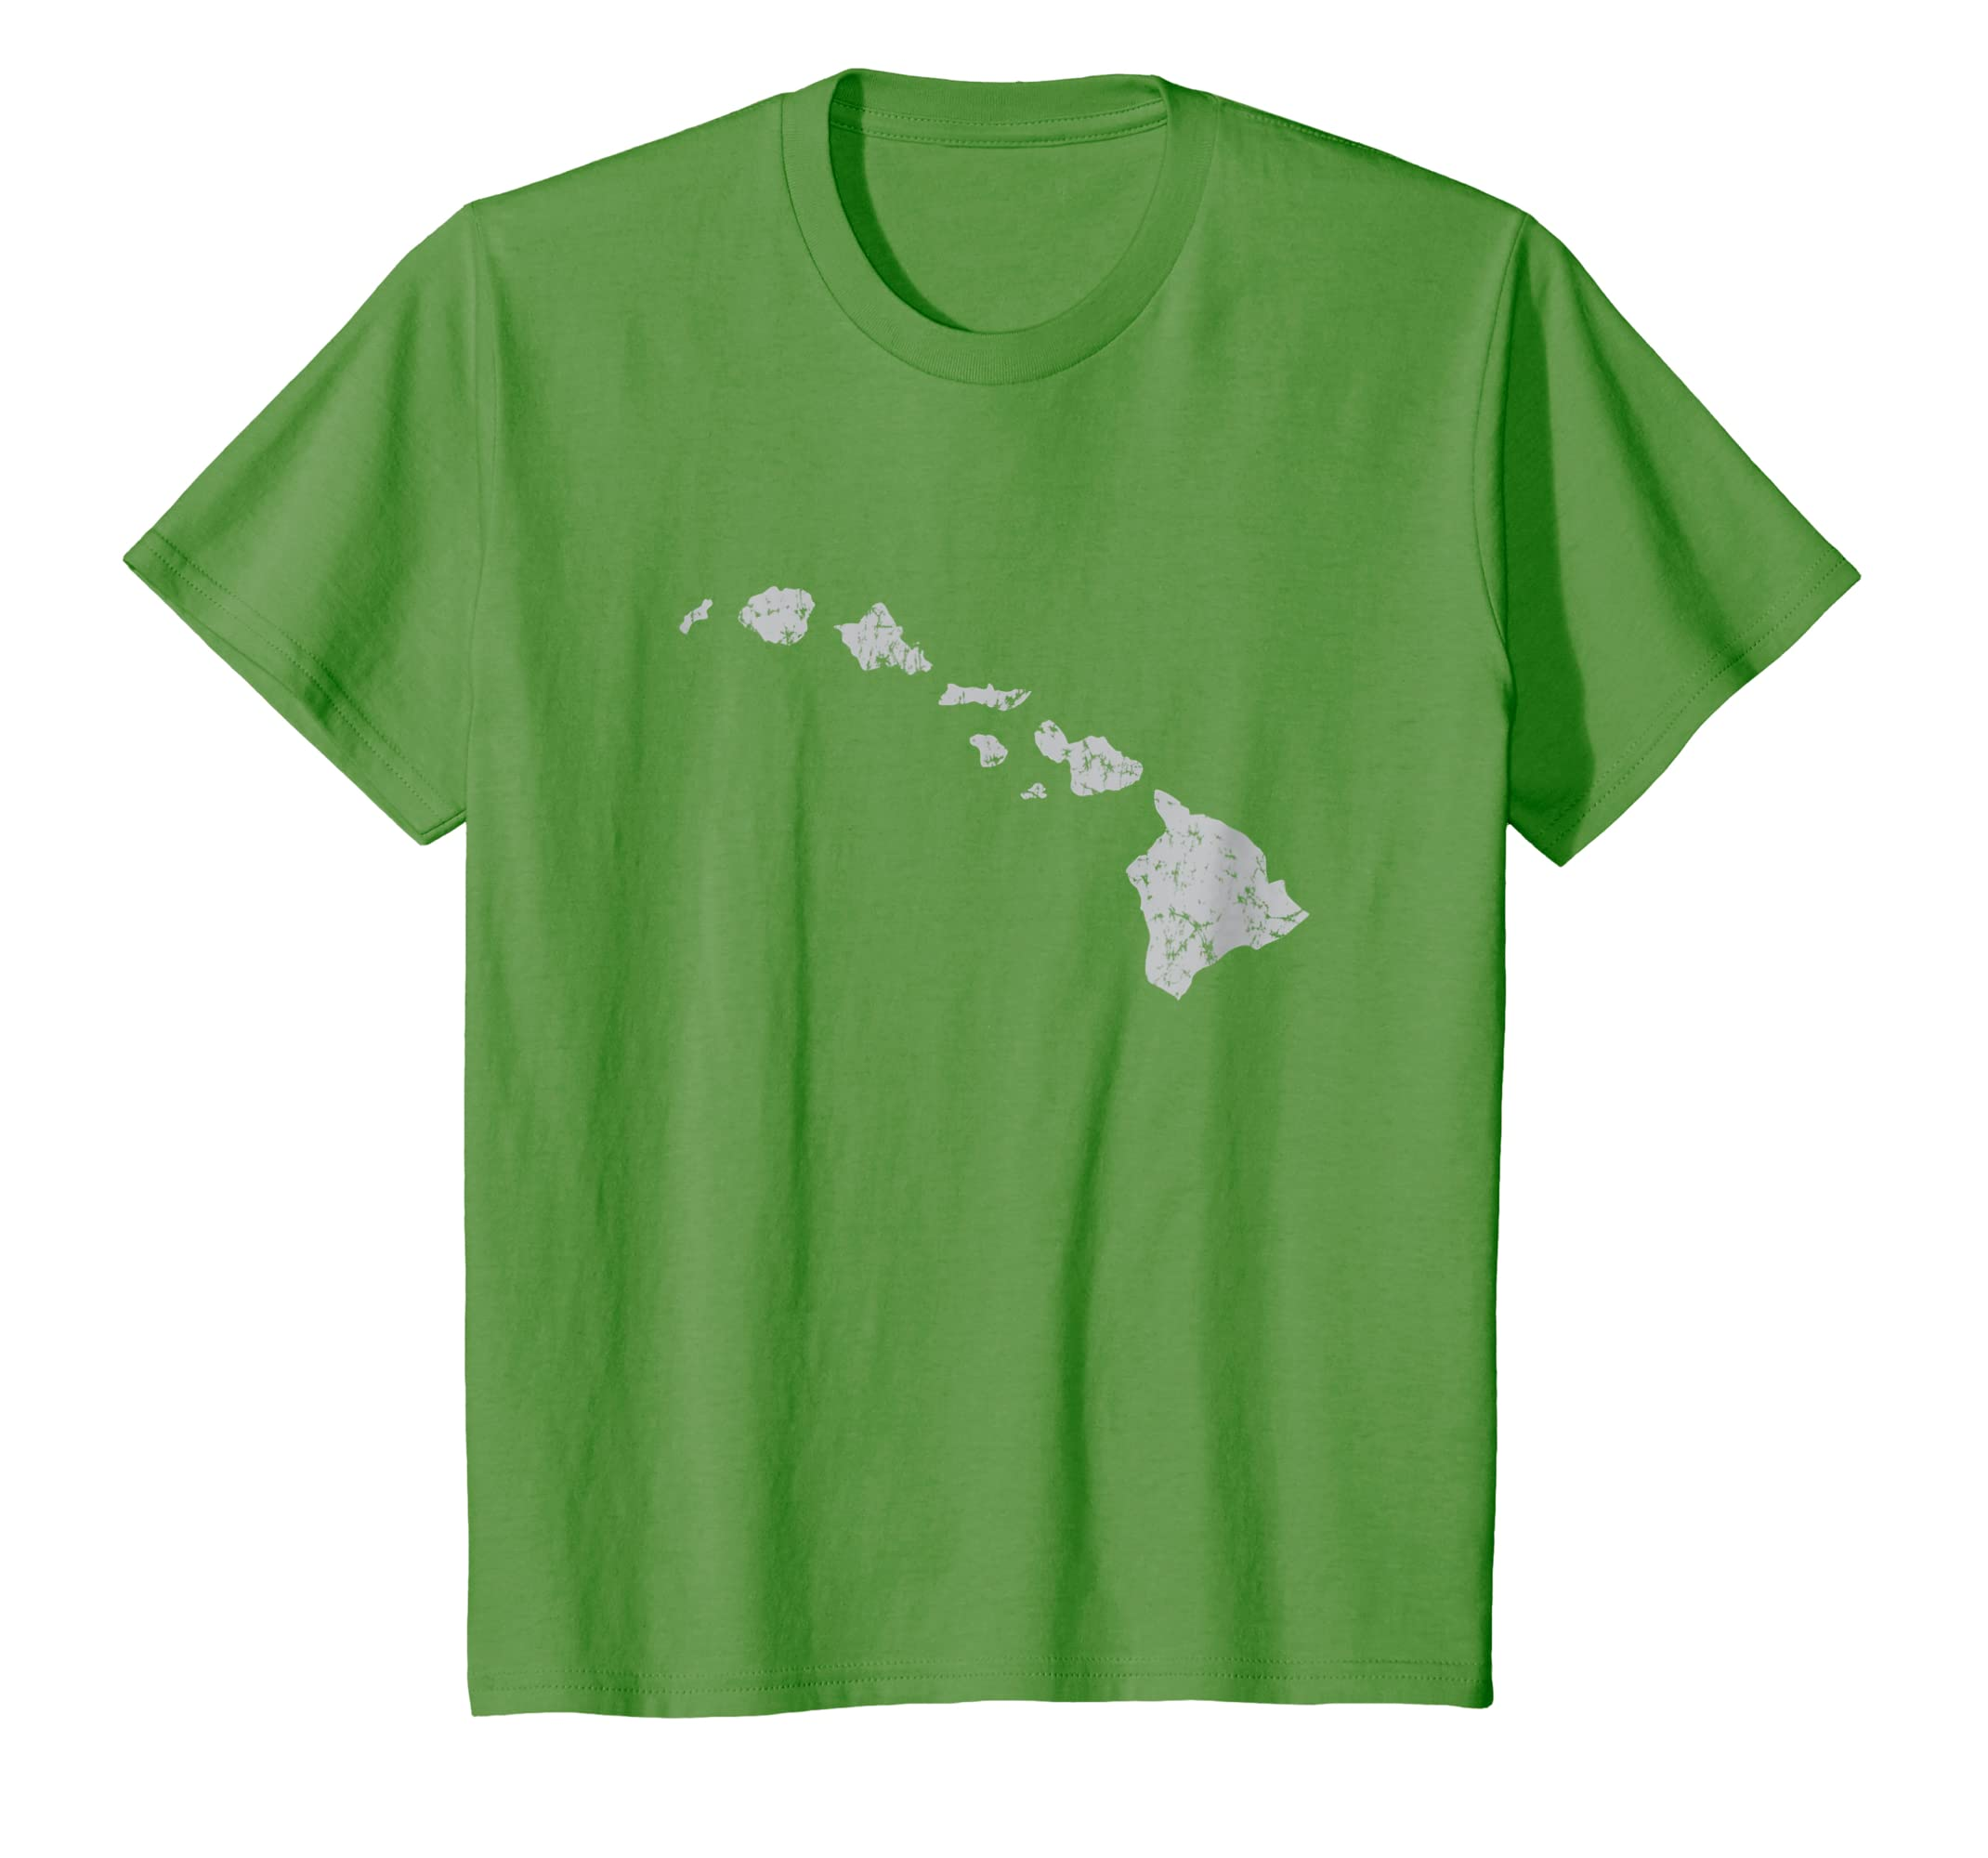 Amazon.com  Hawaiian Island Chain Retro Graphic T-shirt  Clothing c254273e1